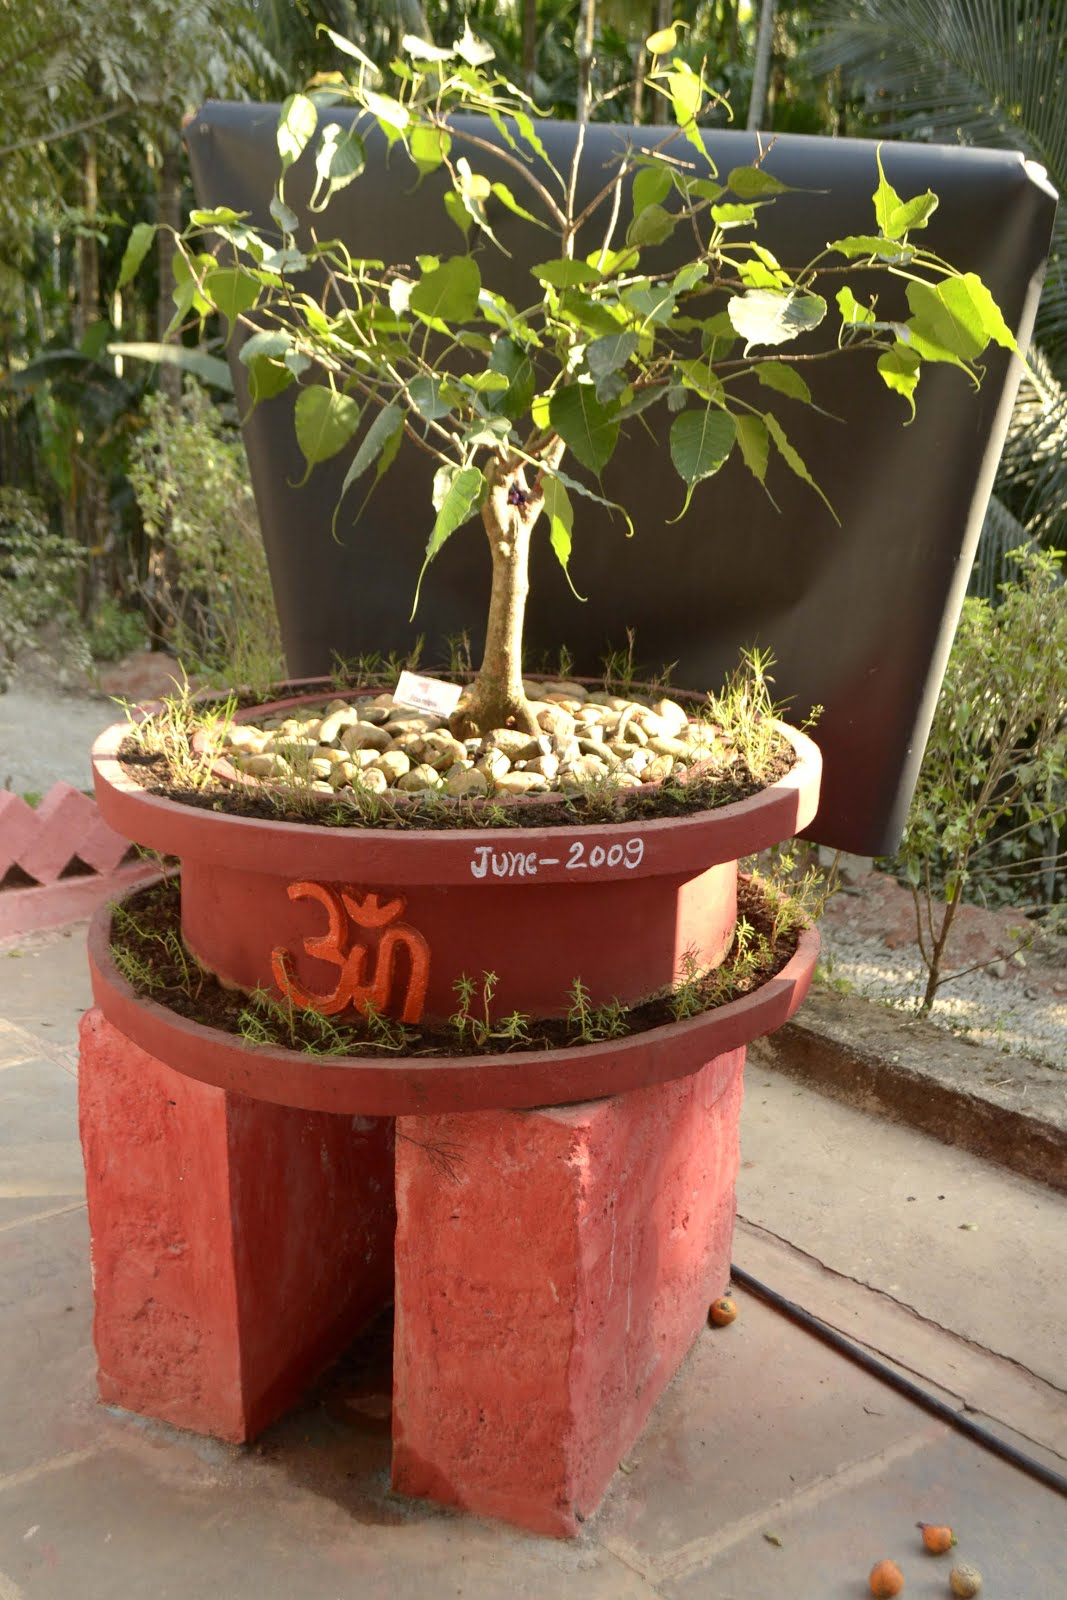 For Religious Bonsai Tree which is lucky for you